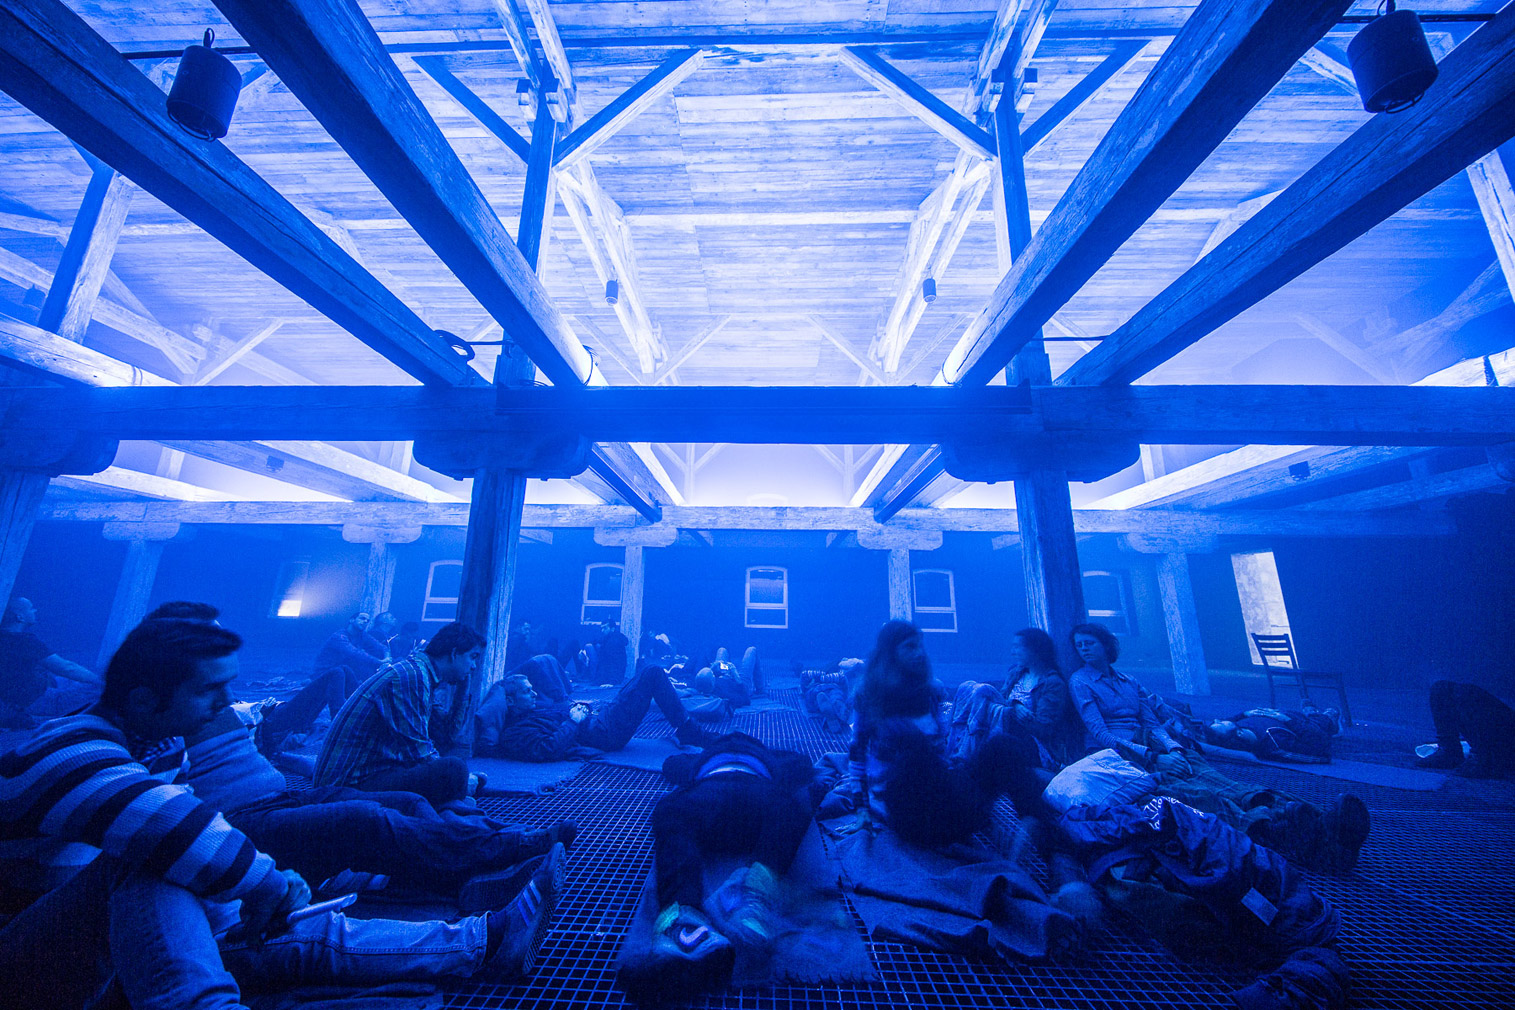 Floorceiling-Institute-of-Spatial-sounds